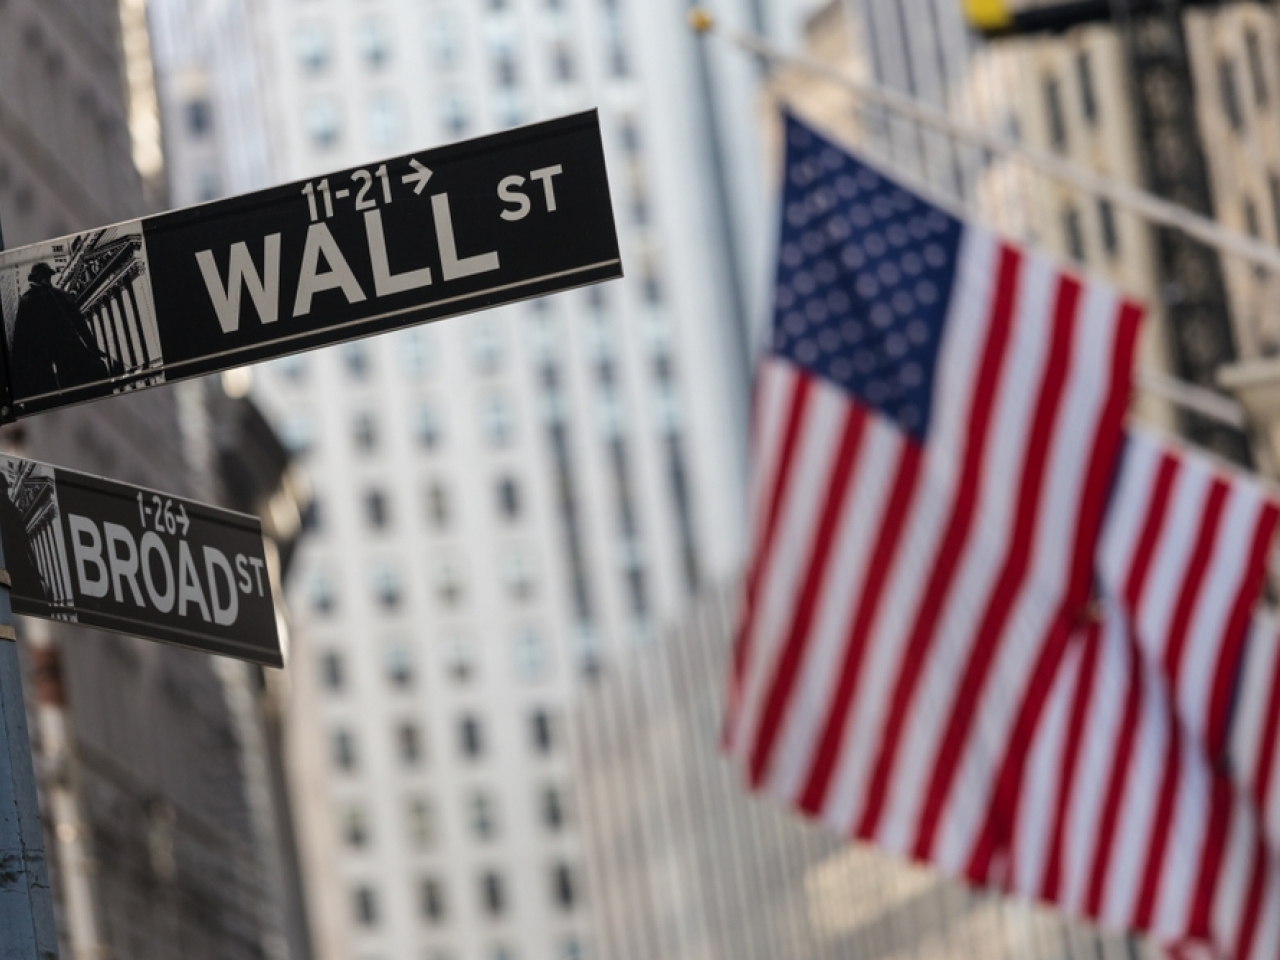 Wall Street ended the week up after a flat Friday. File image: Shutterstock